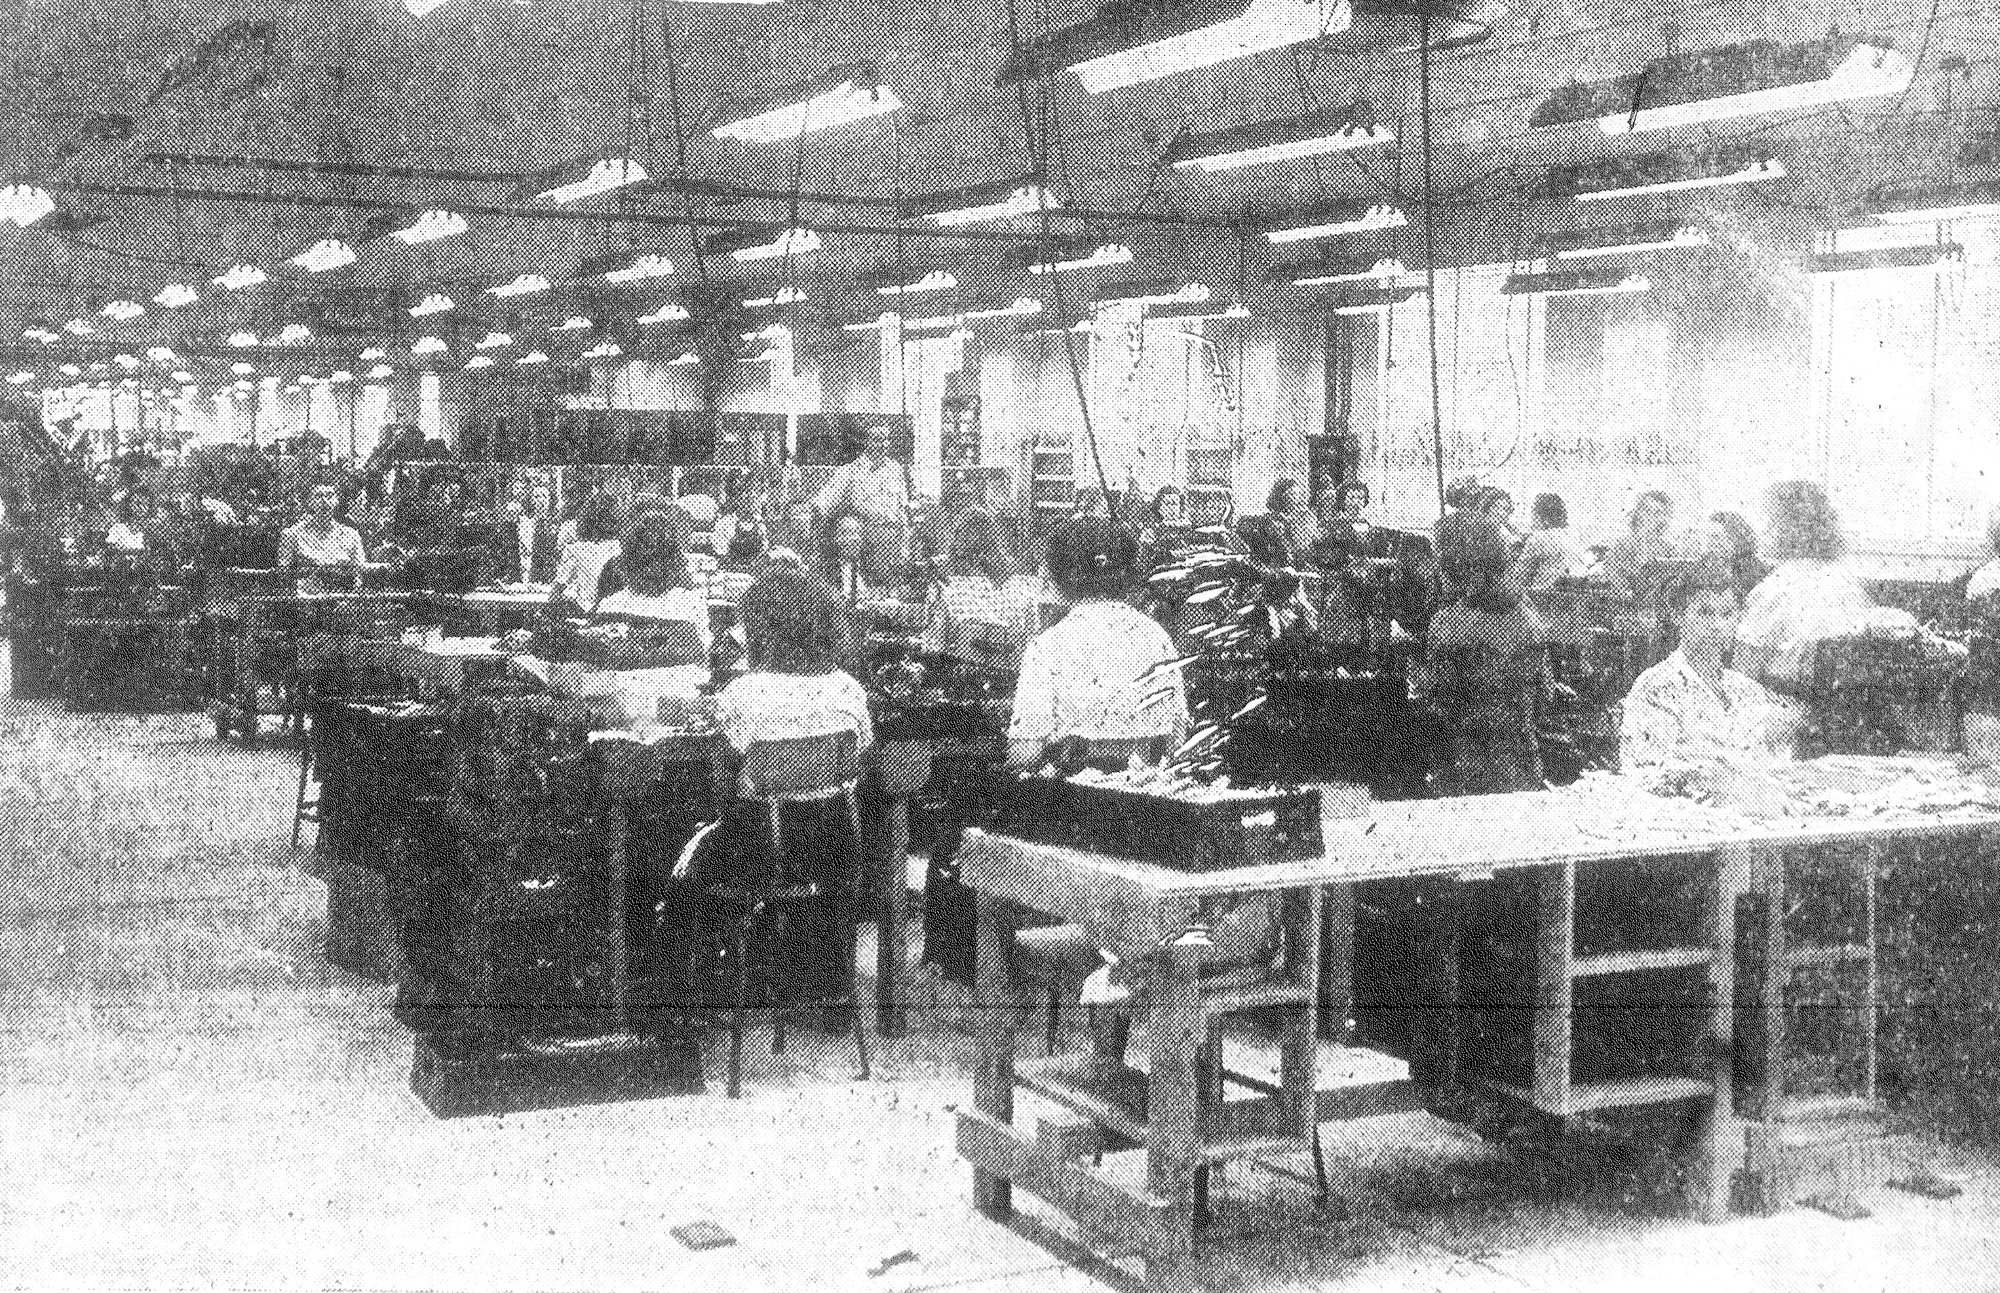 This photo shows the Final Assembly Department, where zippers were given their final inspection for quality.